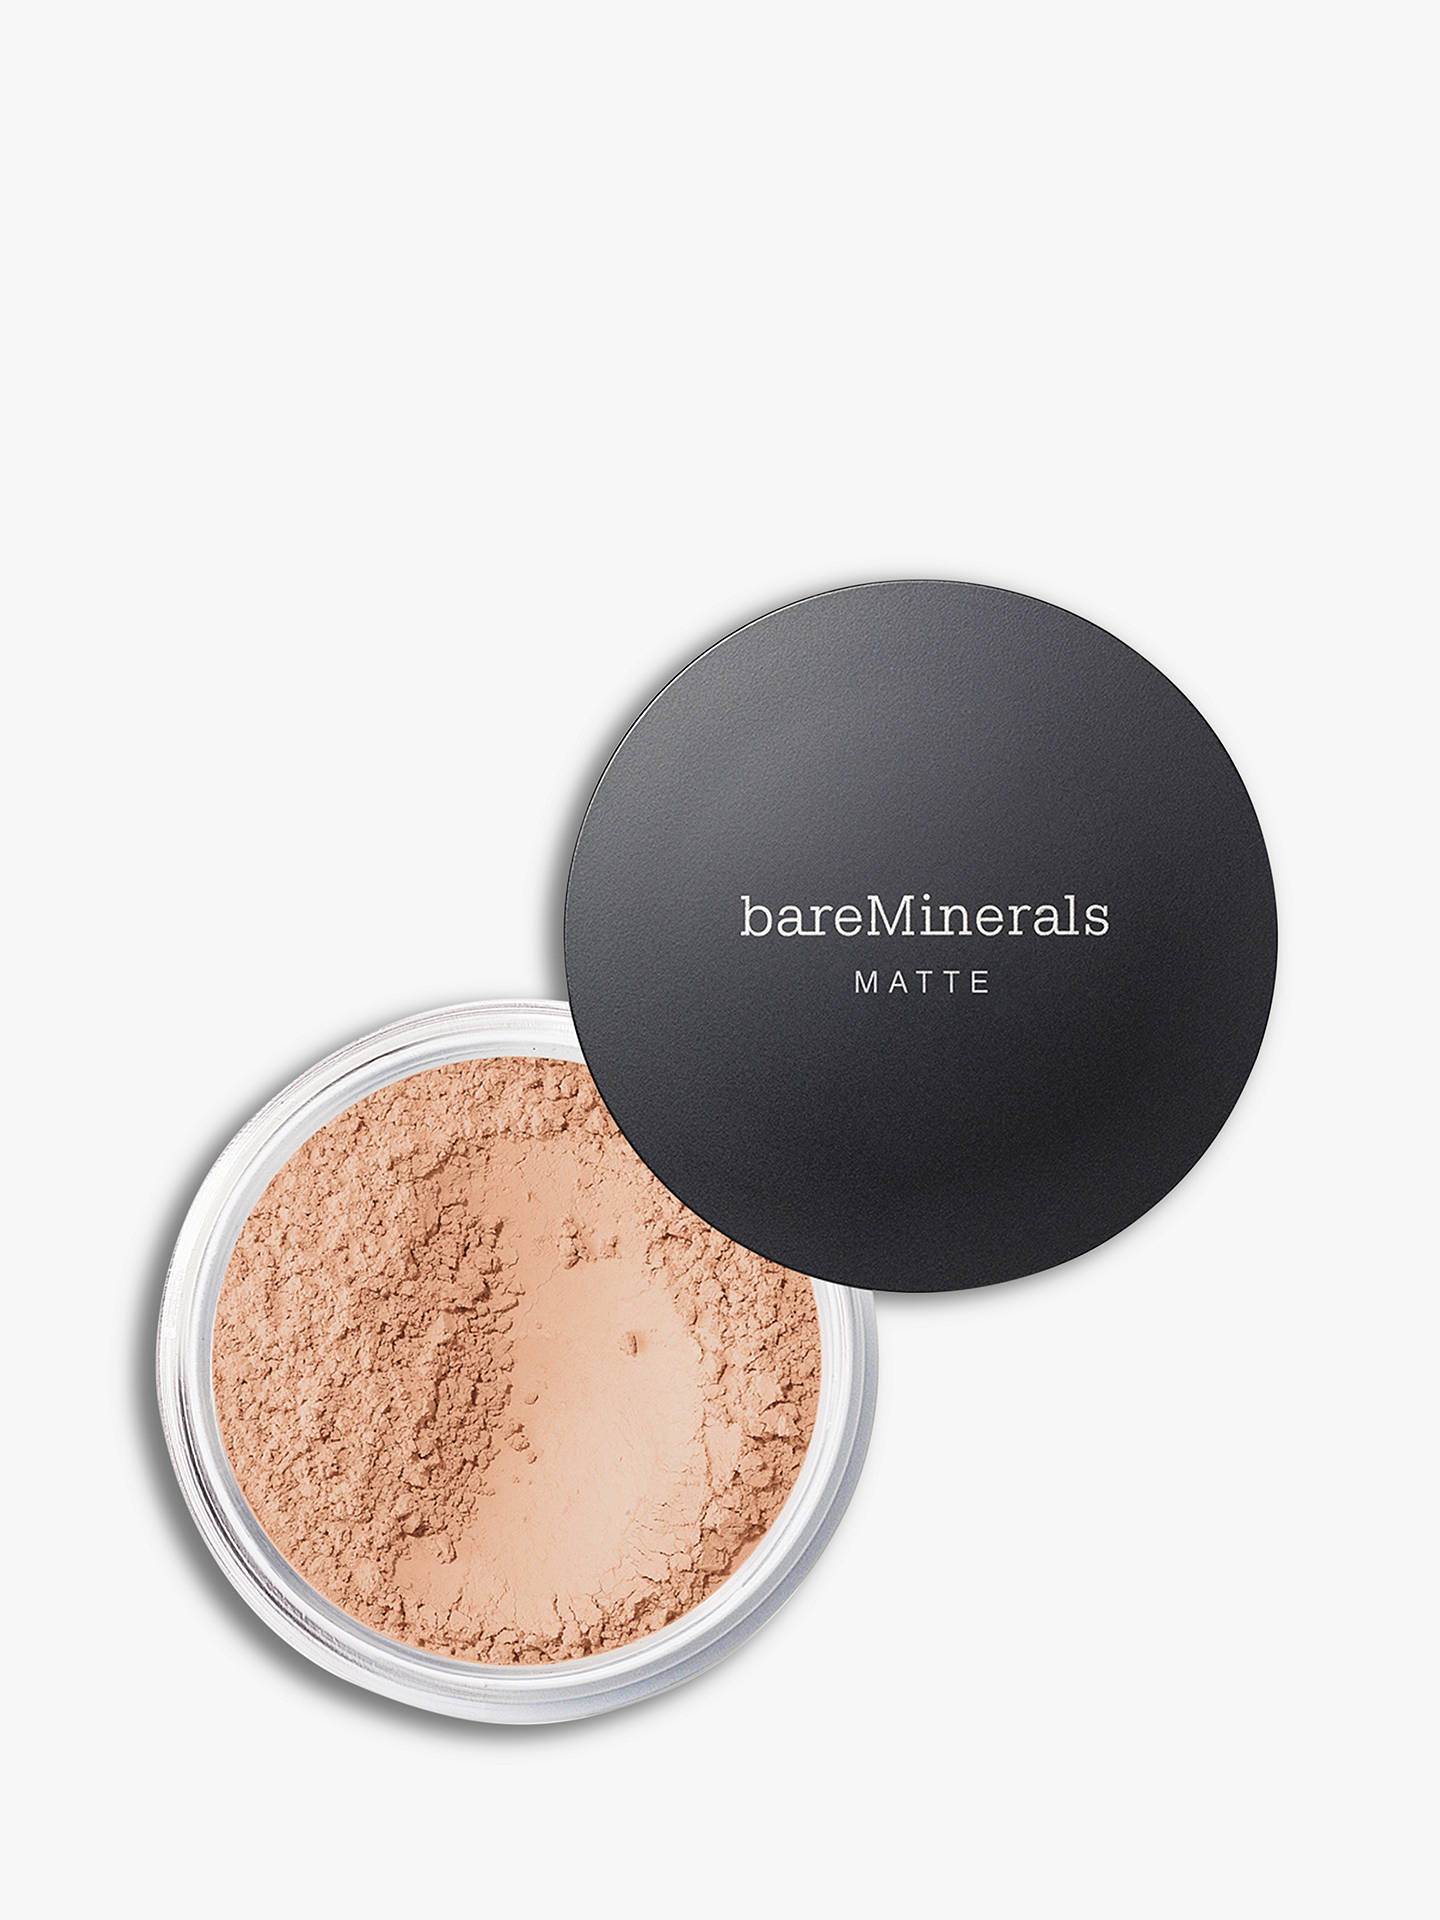 Buy bareMinerals Matte Foundation SPF 15, Medium Online at johnlewis.com